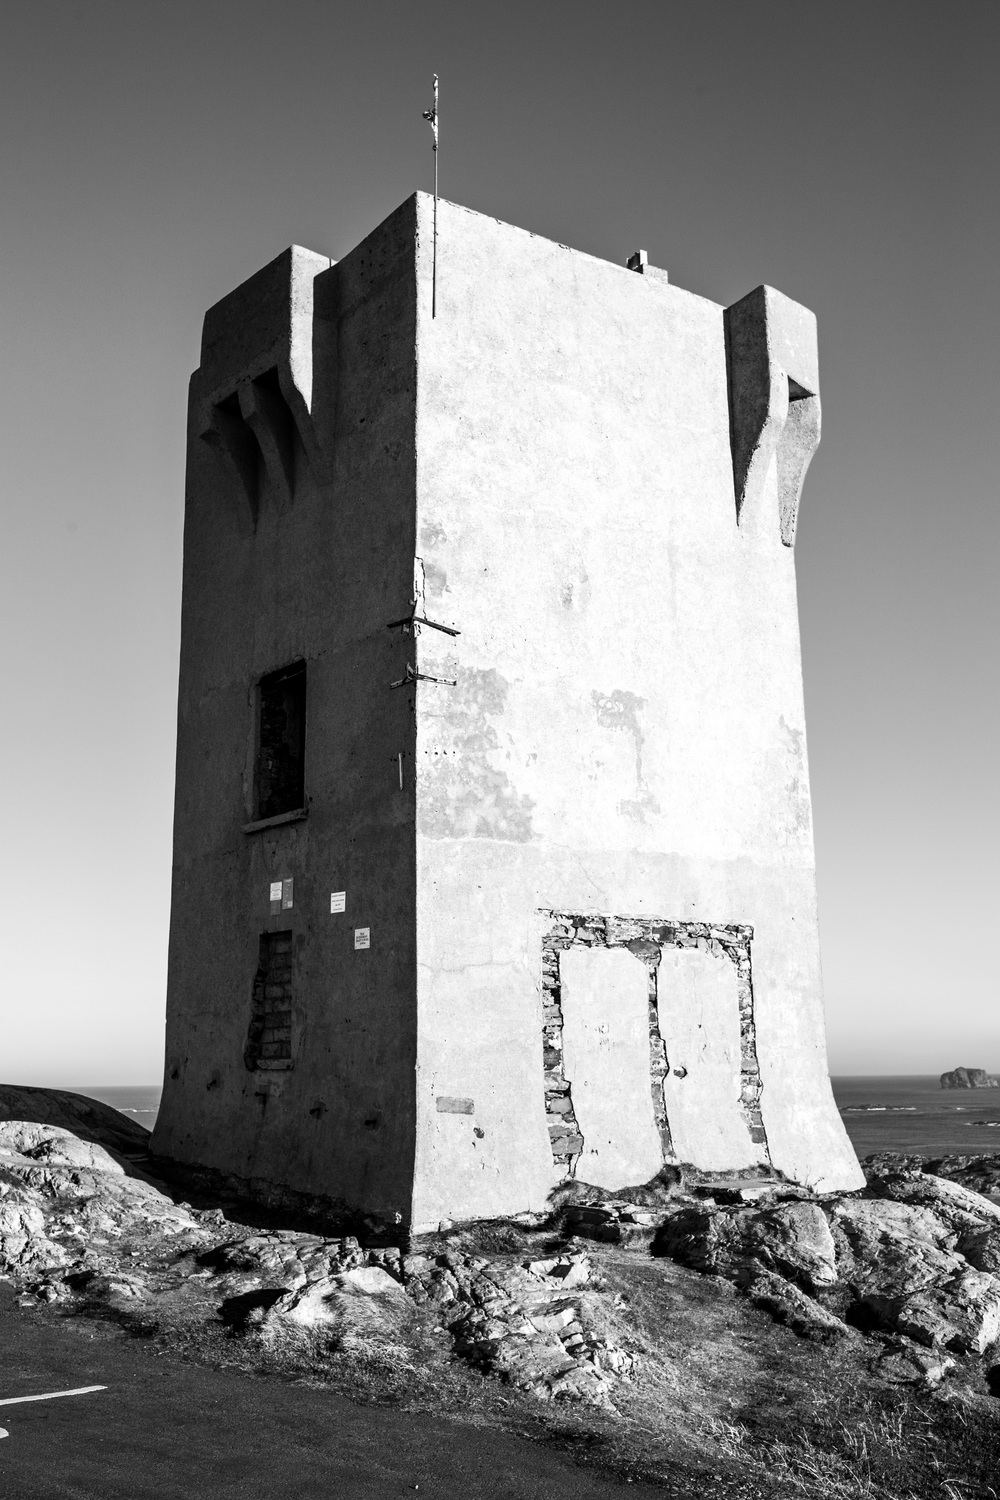 Banba's Tower, Malin Head